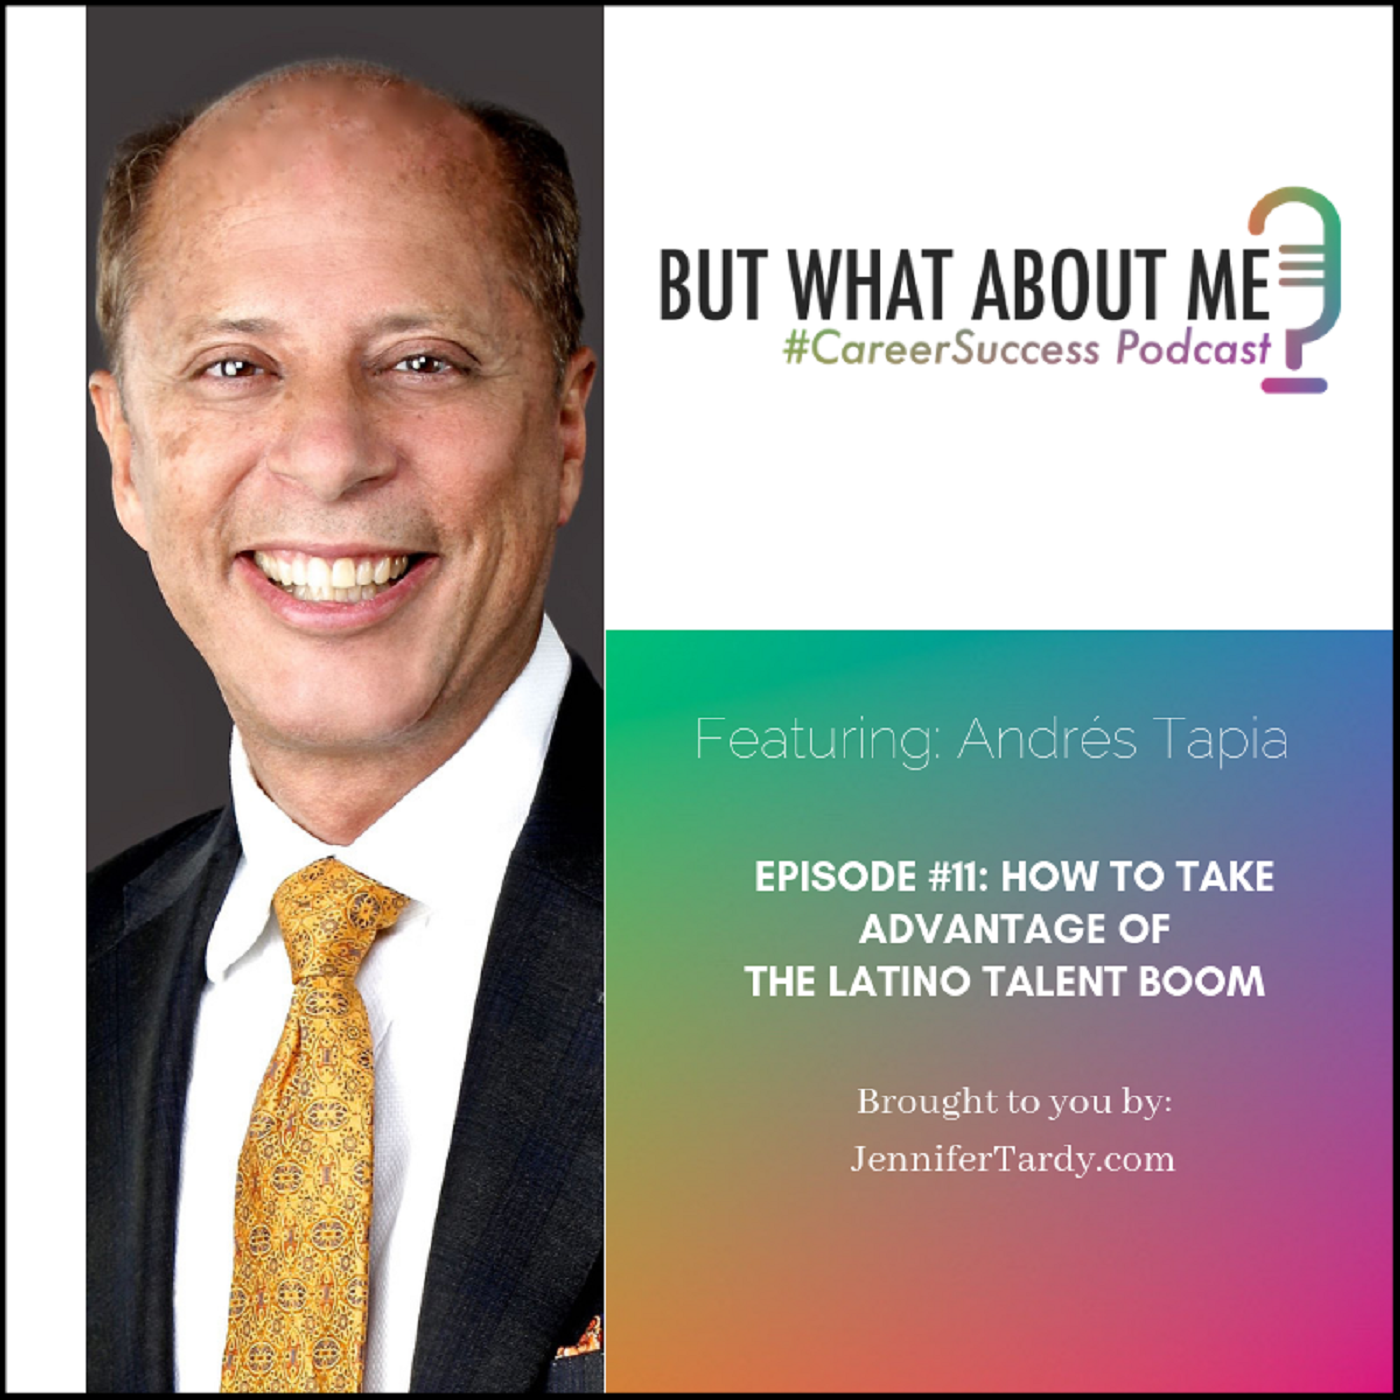 Episode 11: How to Take Advantage of the Latino Talent Boom